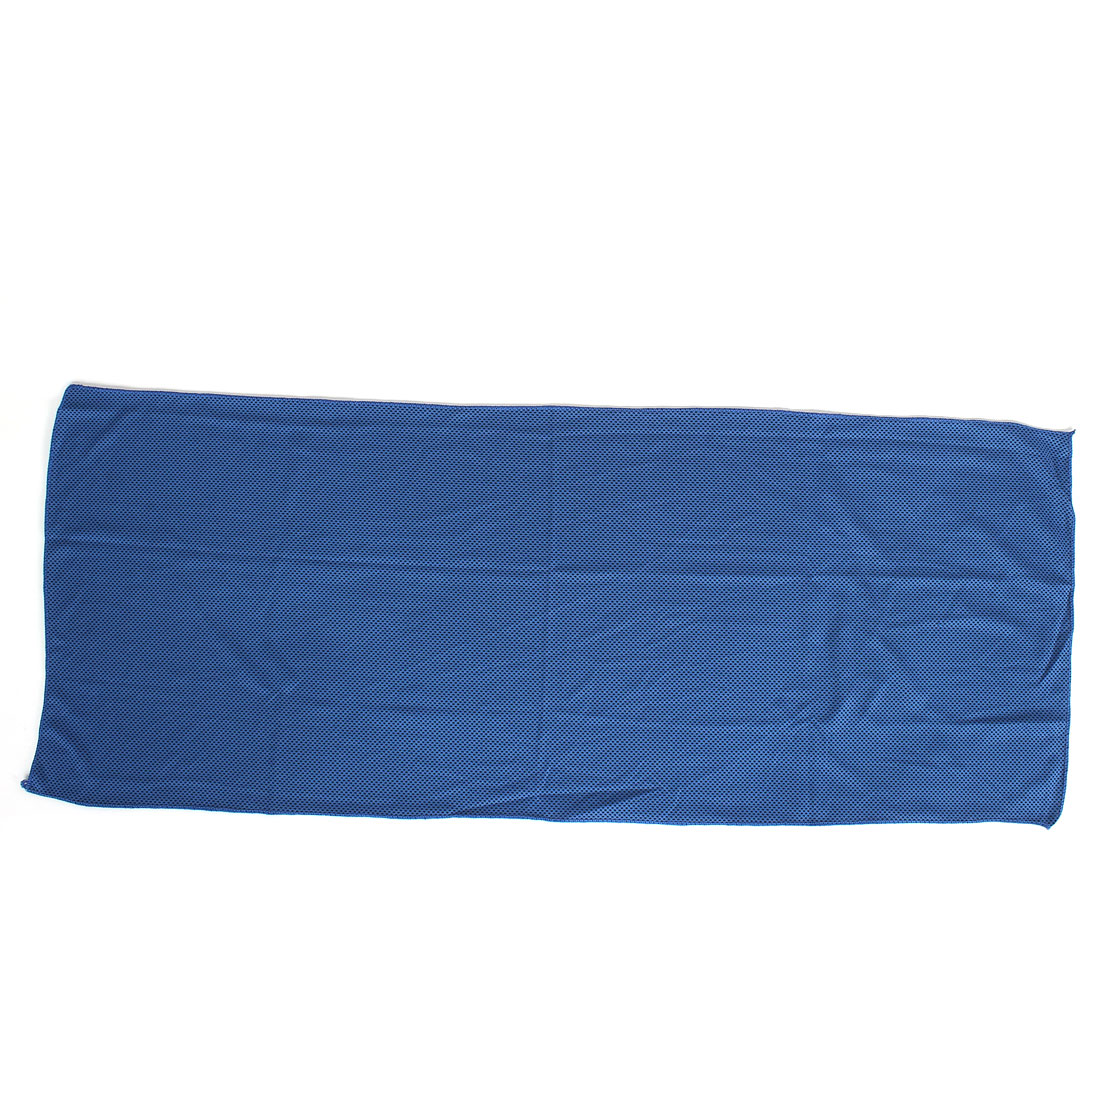 Runner Stretchy Spandex Drying Water Absorbent Towel Terrycloth Blue